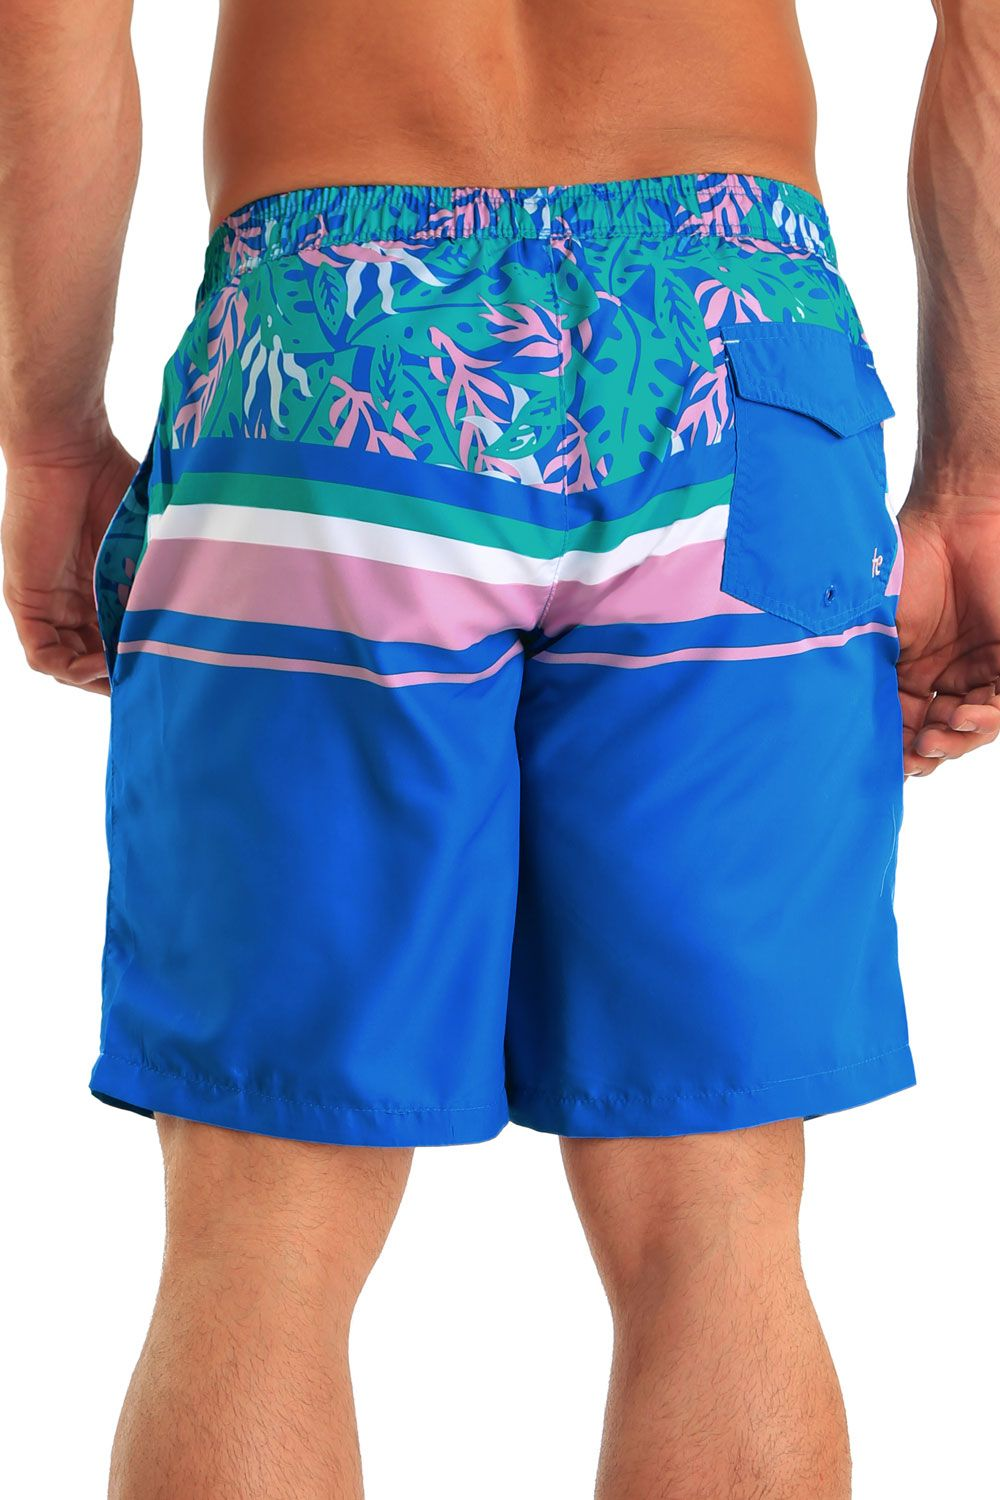 Jungle Juice Men's Swim Trunks | Tipsy Elves